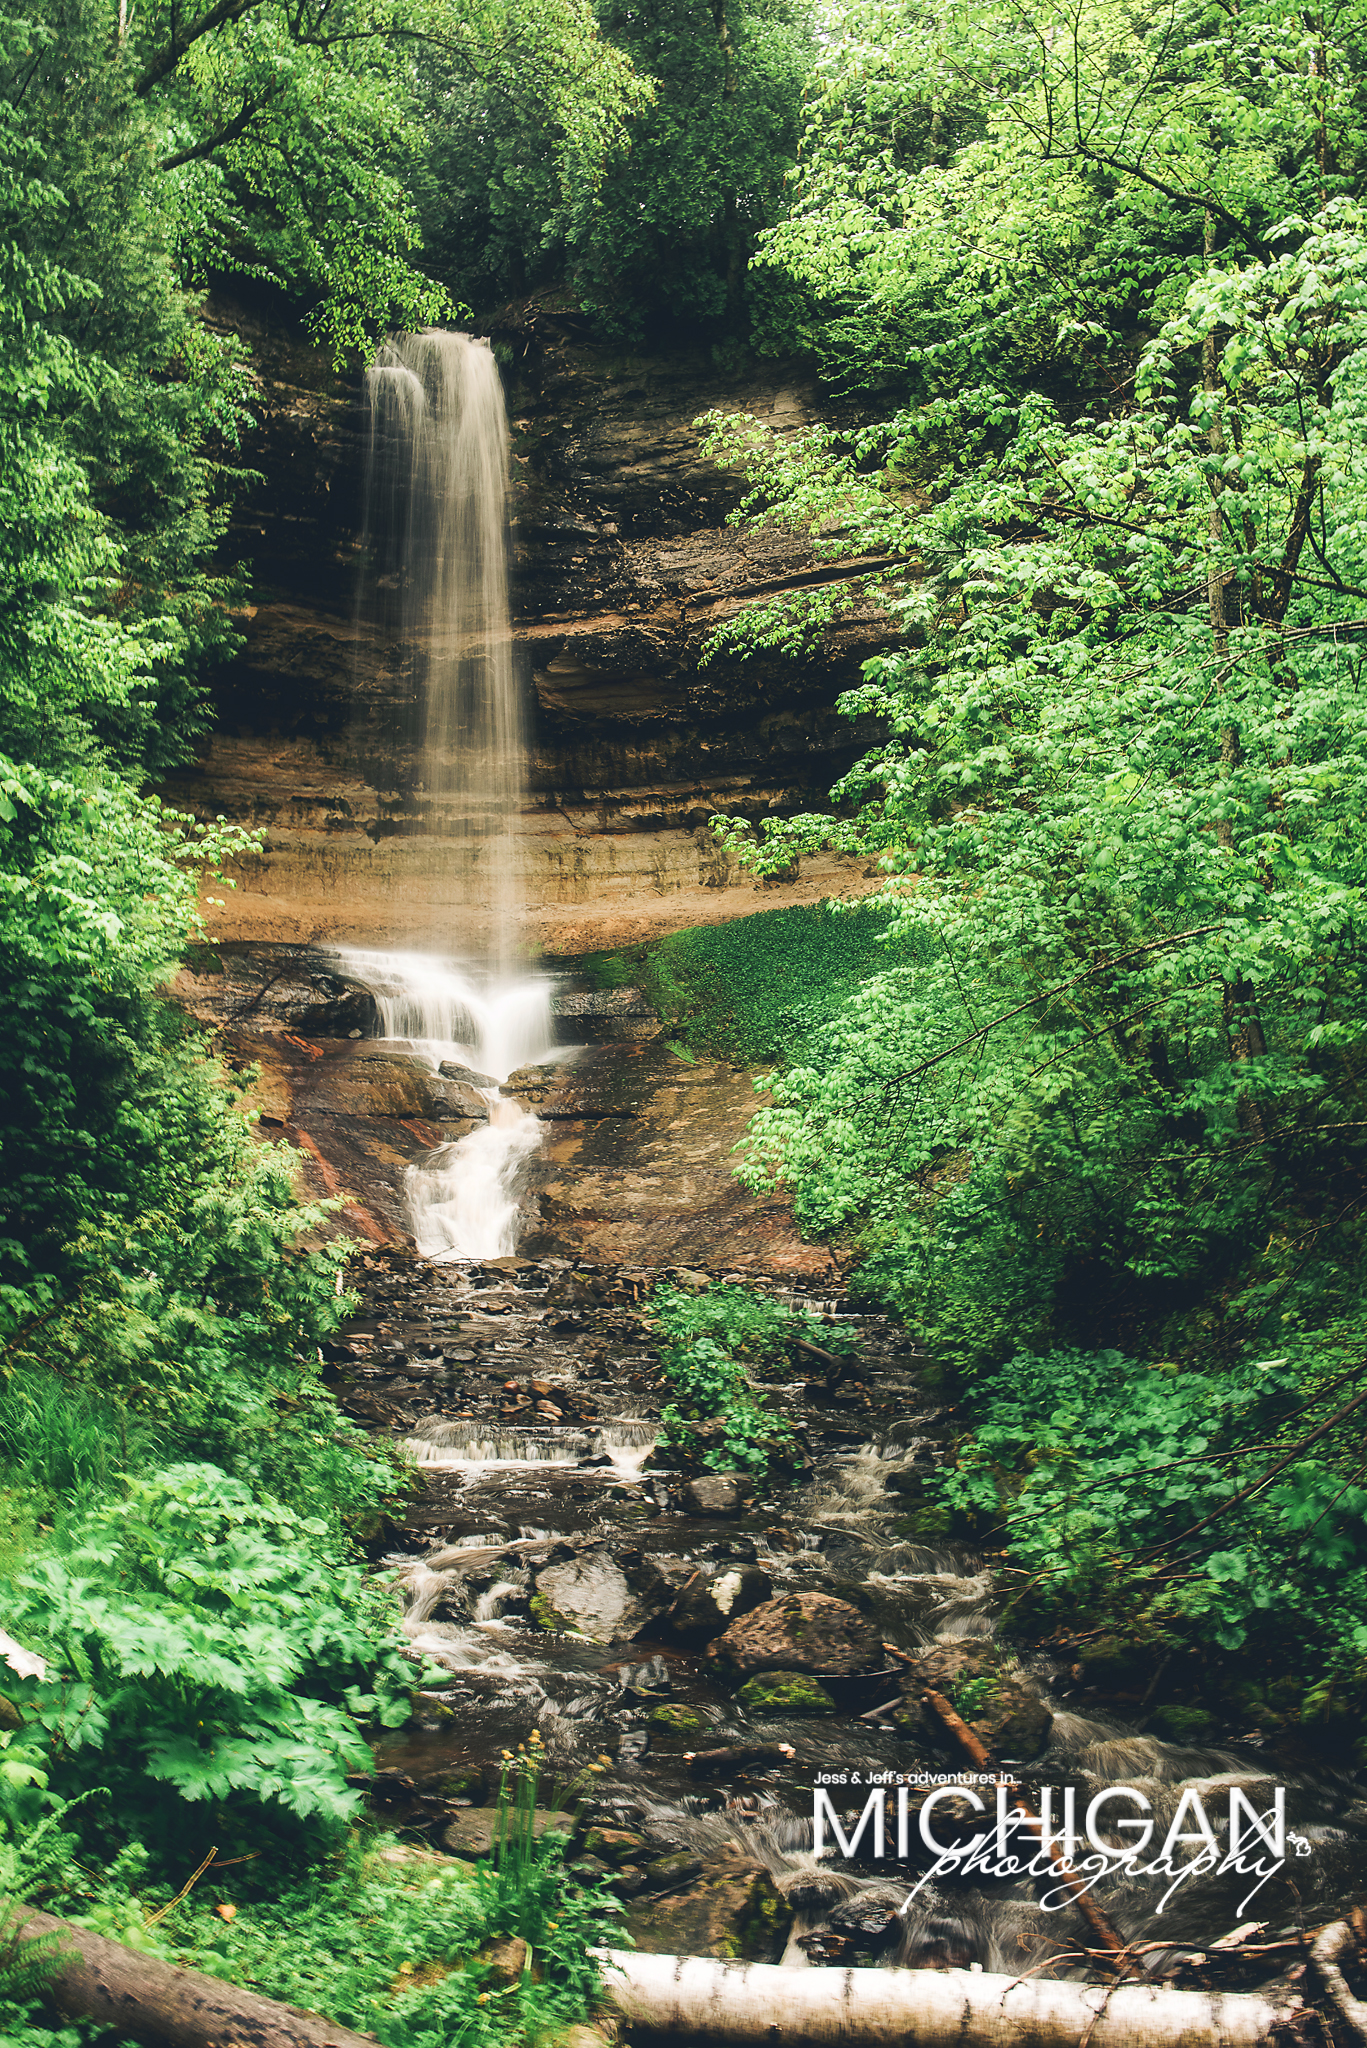 Munising Falls in Michigan's Upper Peninsula